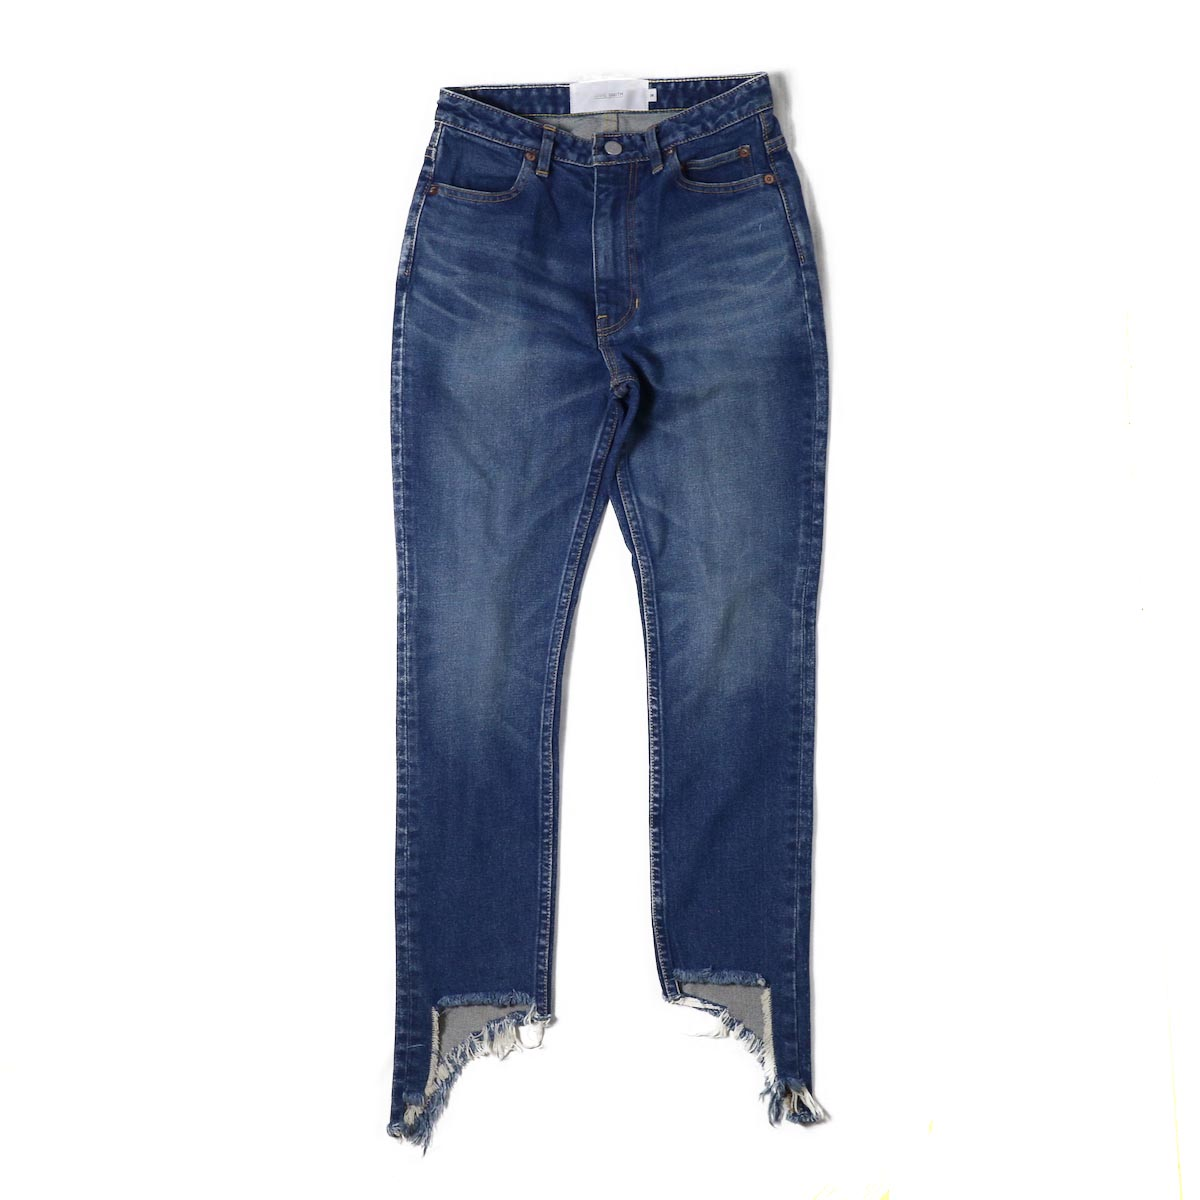 JANE SMITH / CUT OFF SKINNY -INDIGO VINTAGE WASH